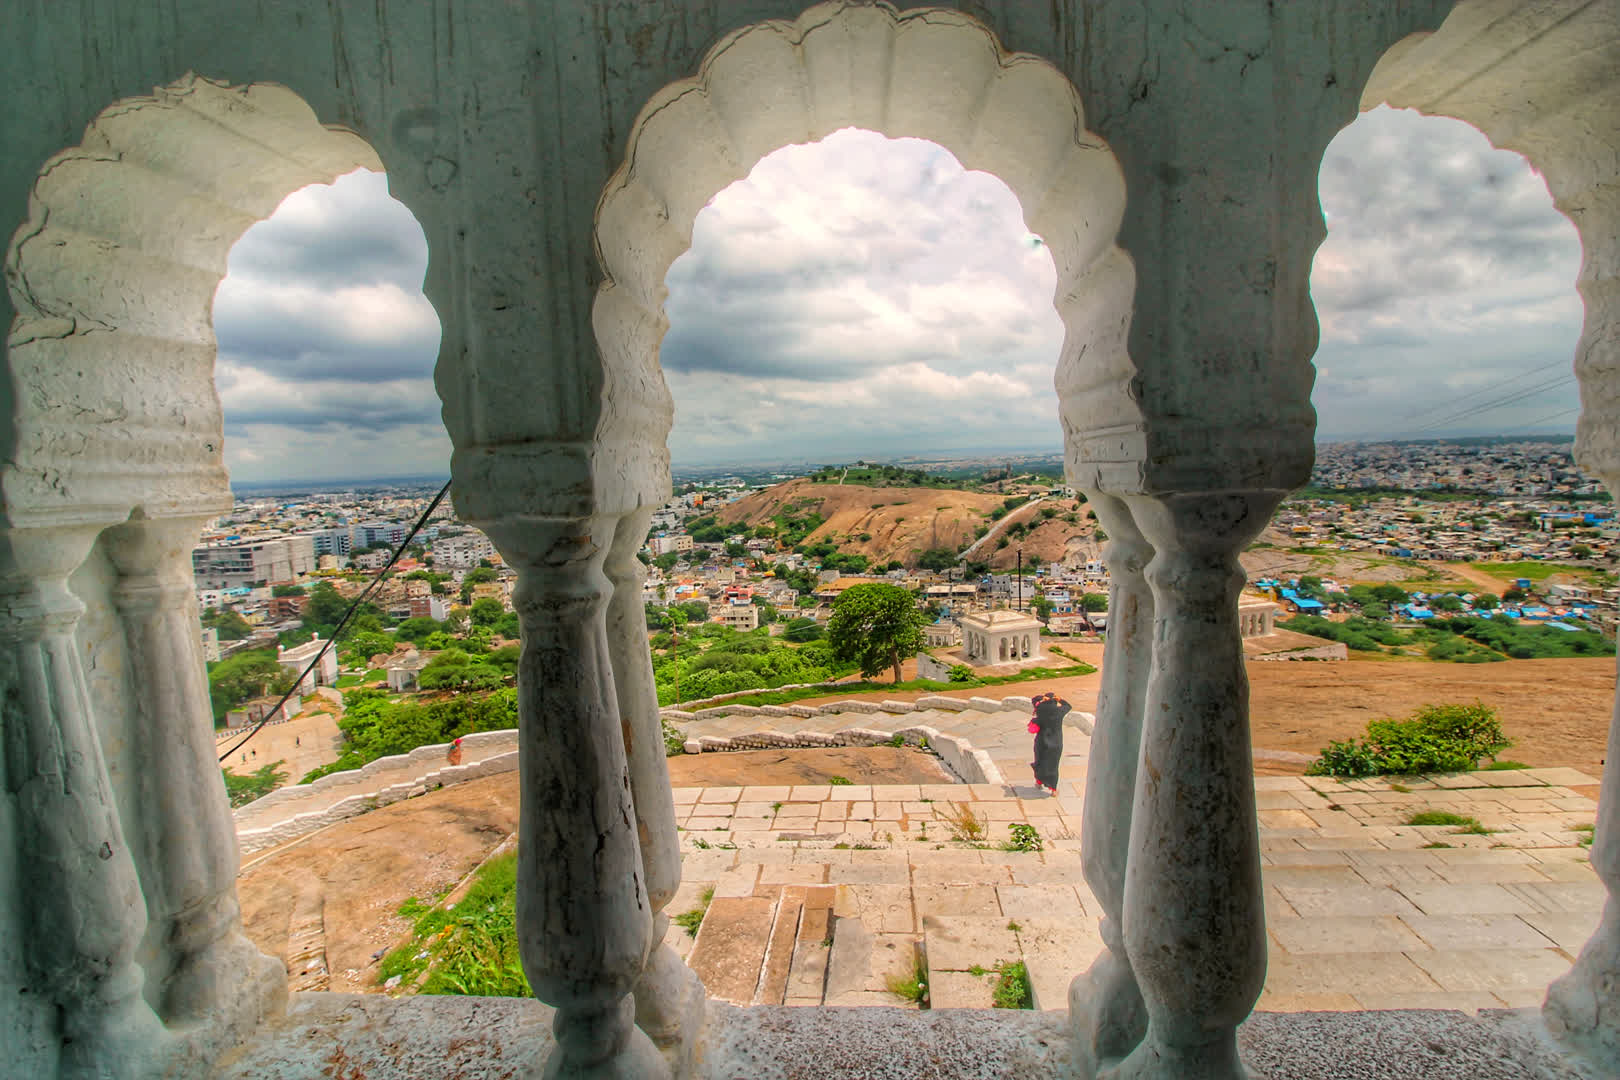 Standing behind arches on the dome-shaped hillock, from Moula Ali hill one can get stunning views of Hyderabad and its twin city, Secunderabad